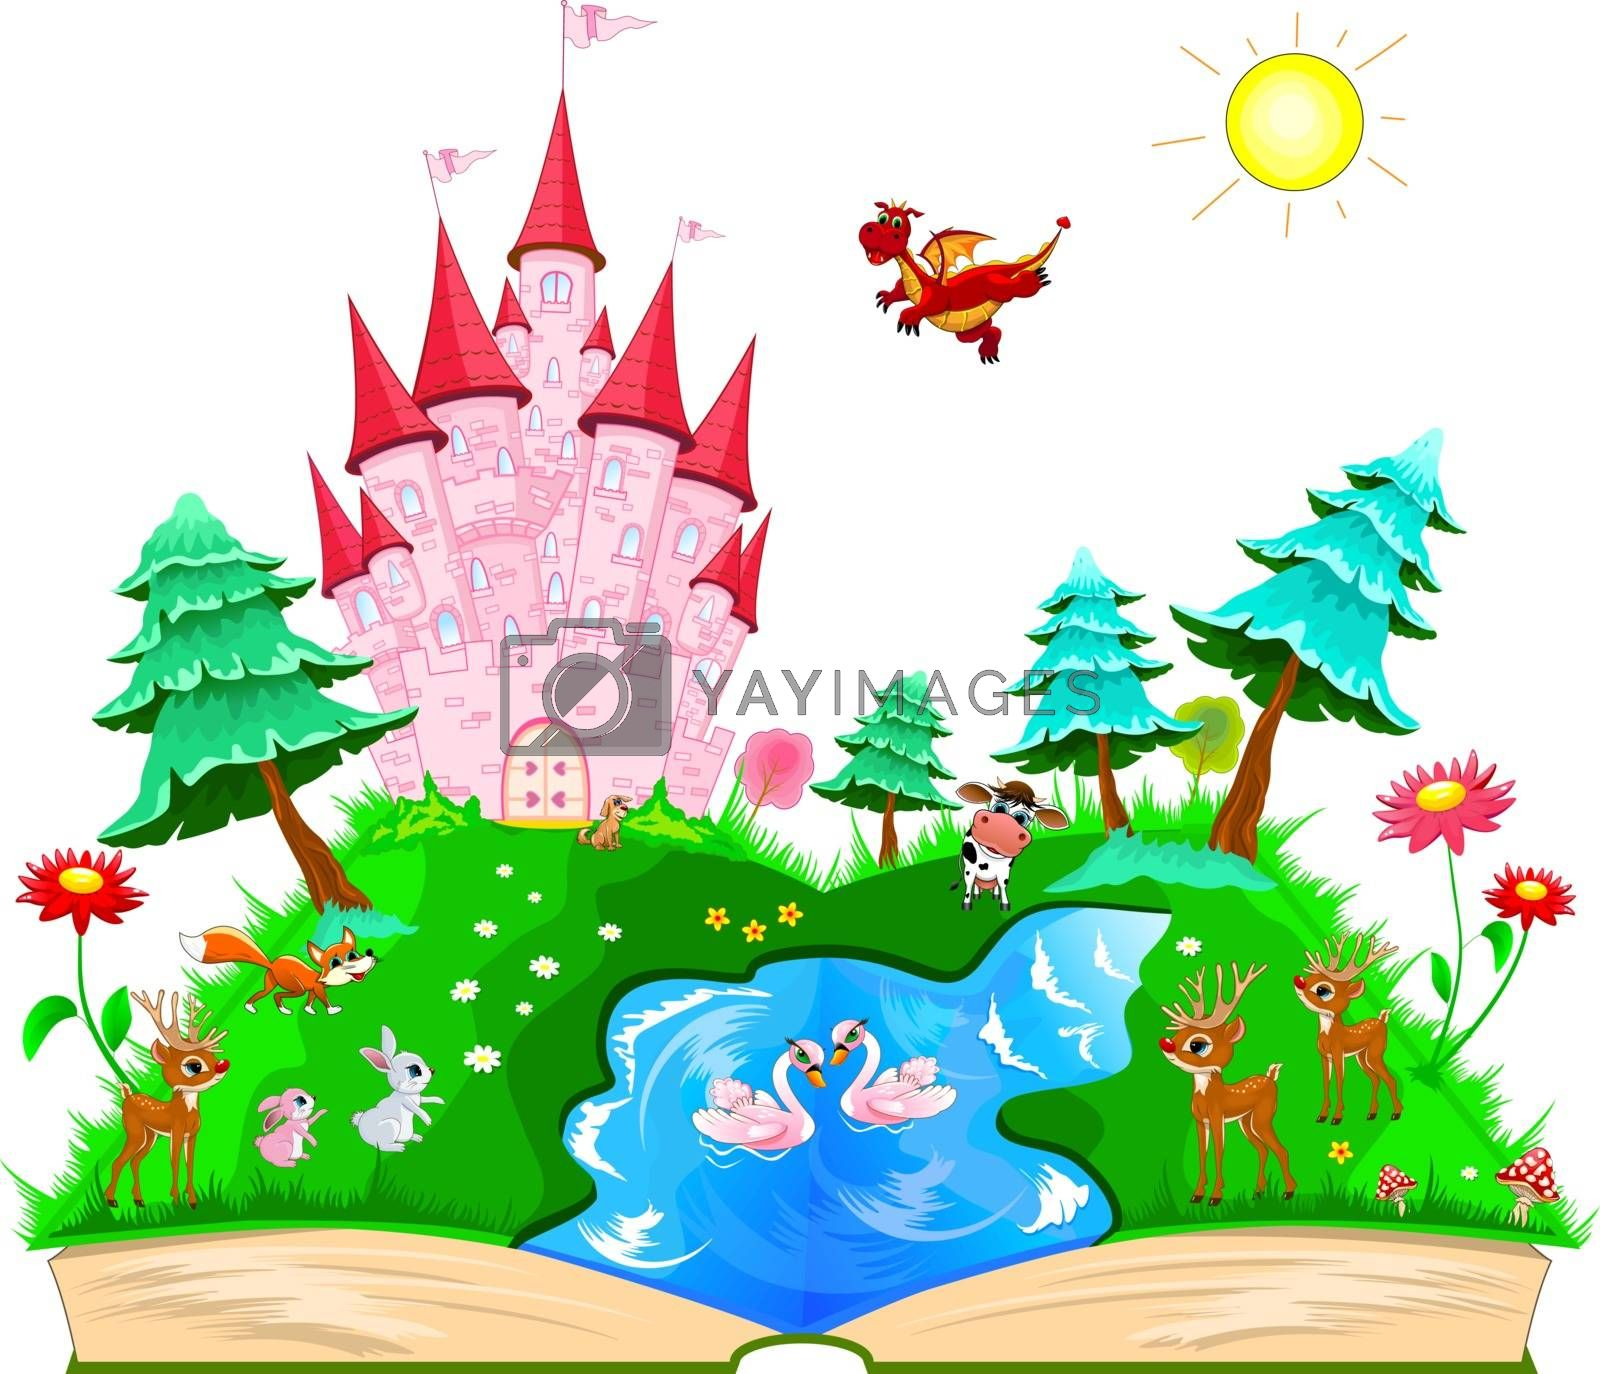 Open fairytale book. On the pages of a pink castle, various animals, a river, a forest and flowers.